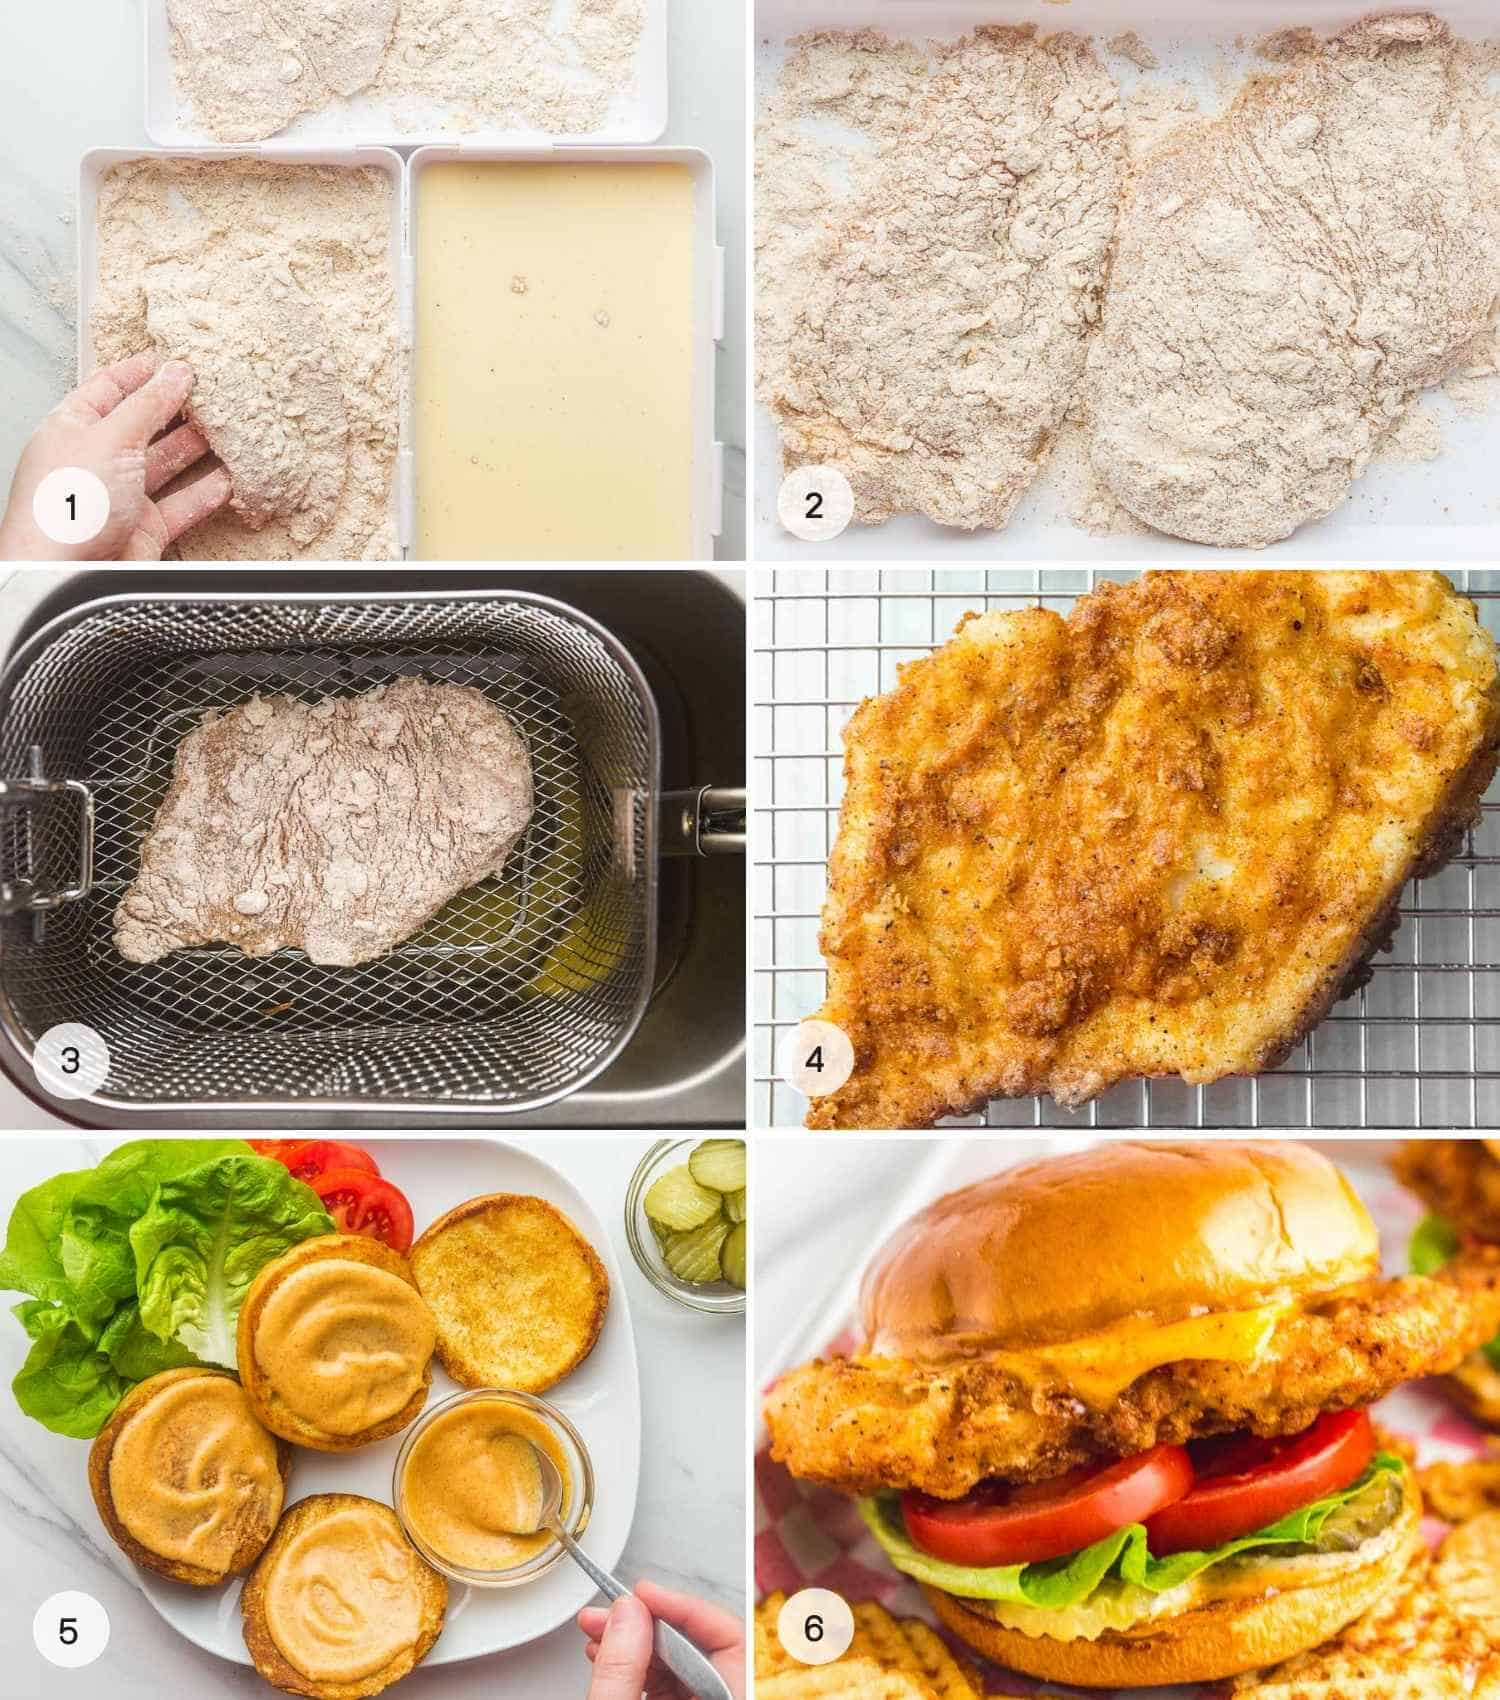 How to Make Chick-Fil-A Sandwich, a collage of 6 images showing how to bread chicken, fry it, and assemble the sandwich